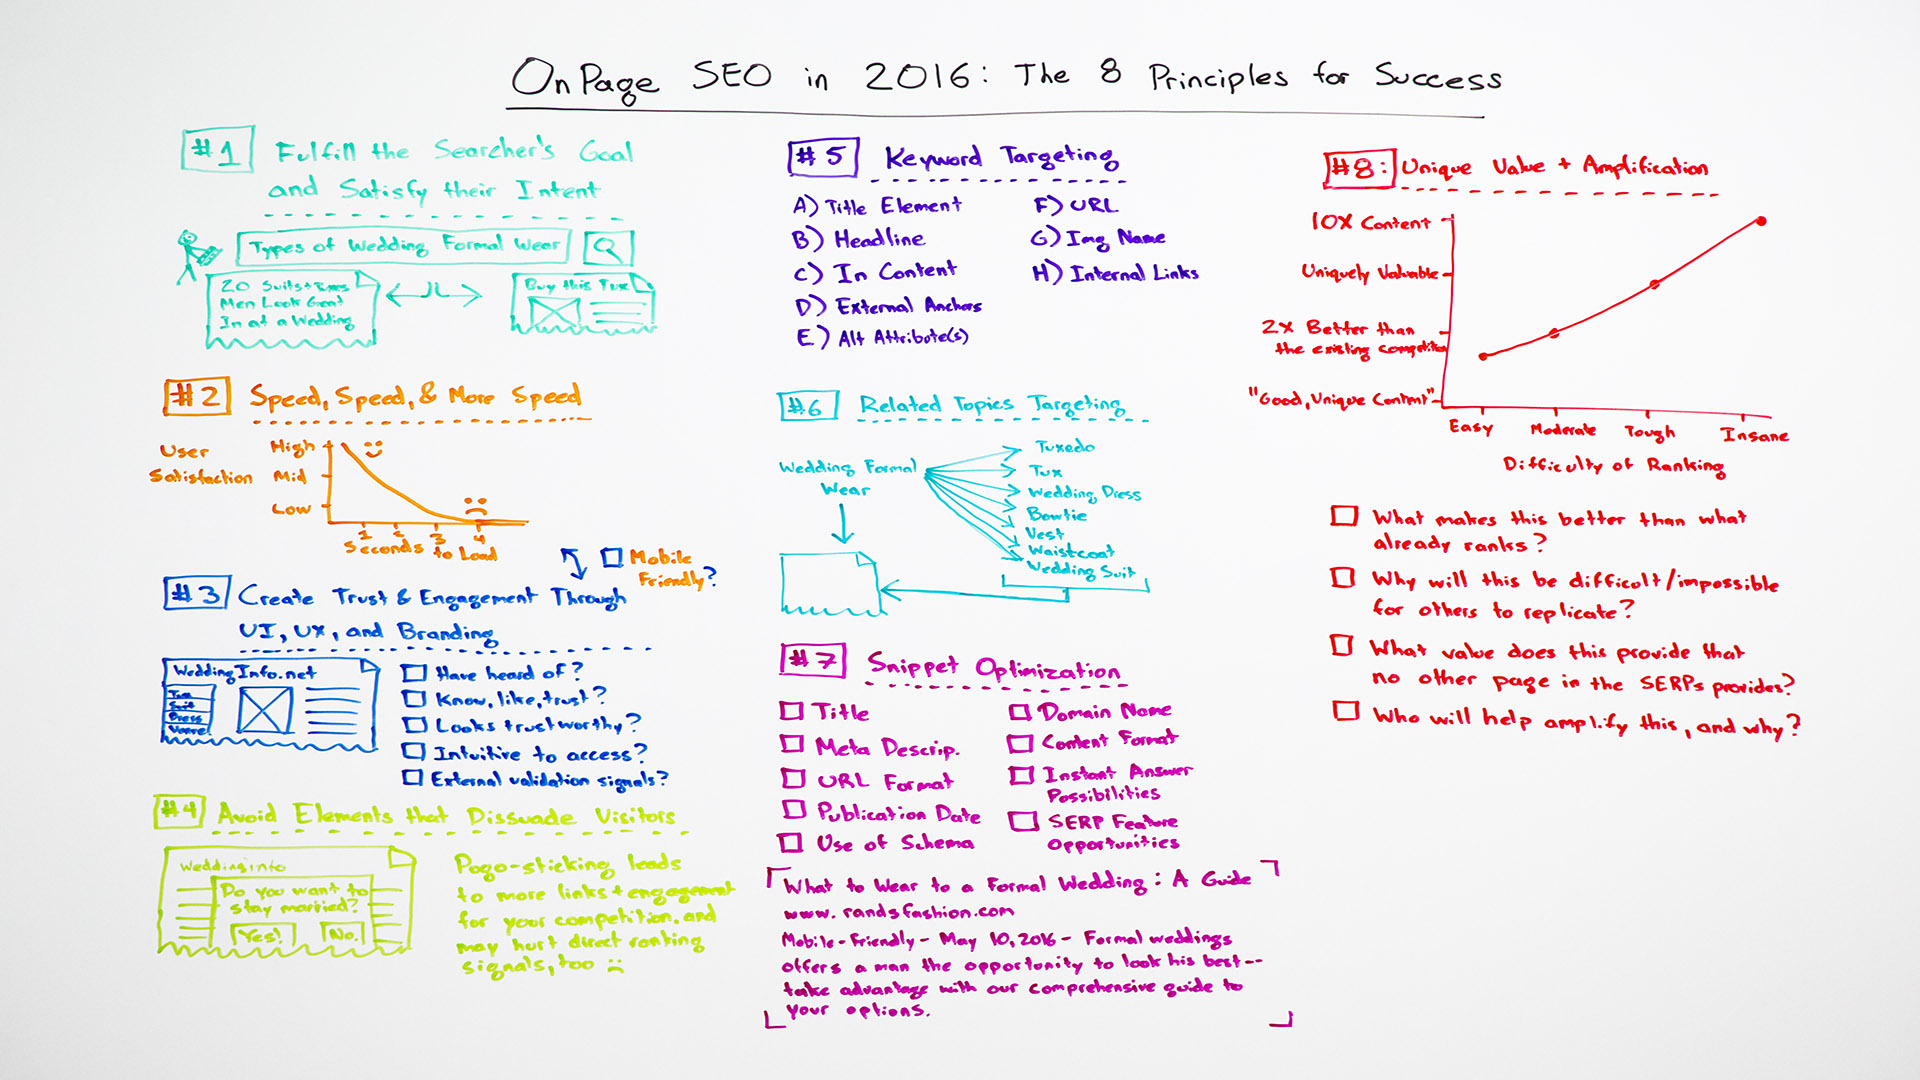 On-Page SEO in 2016: The 8 Principles for Success